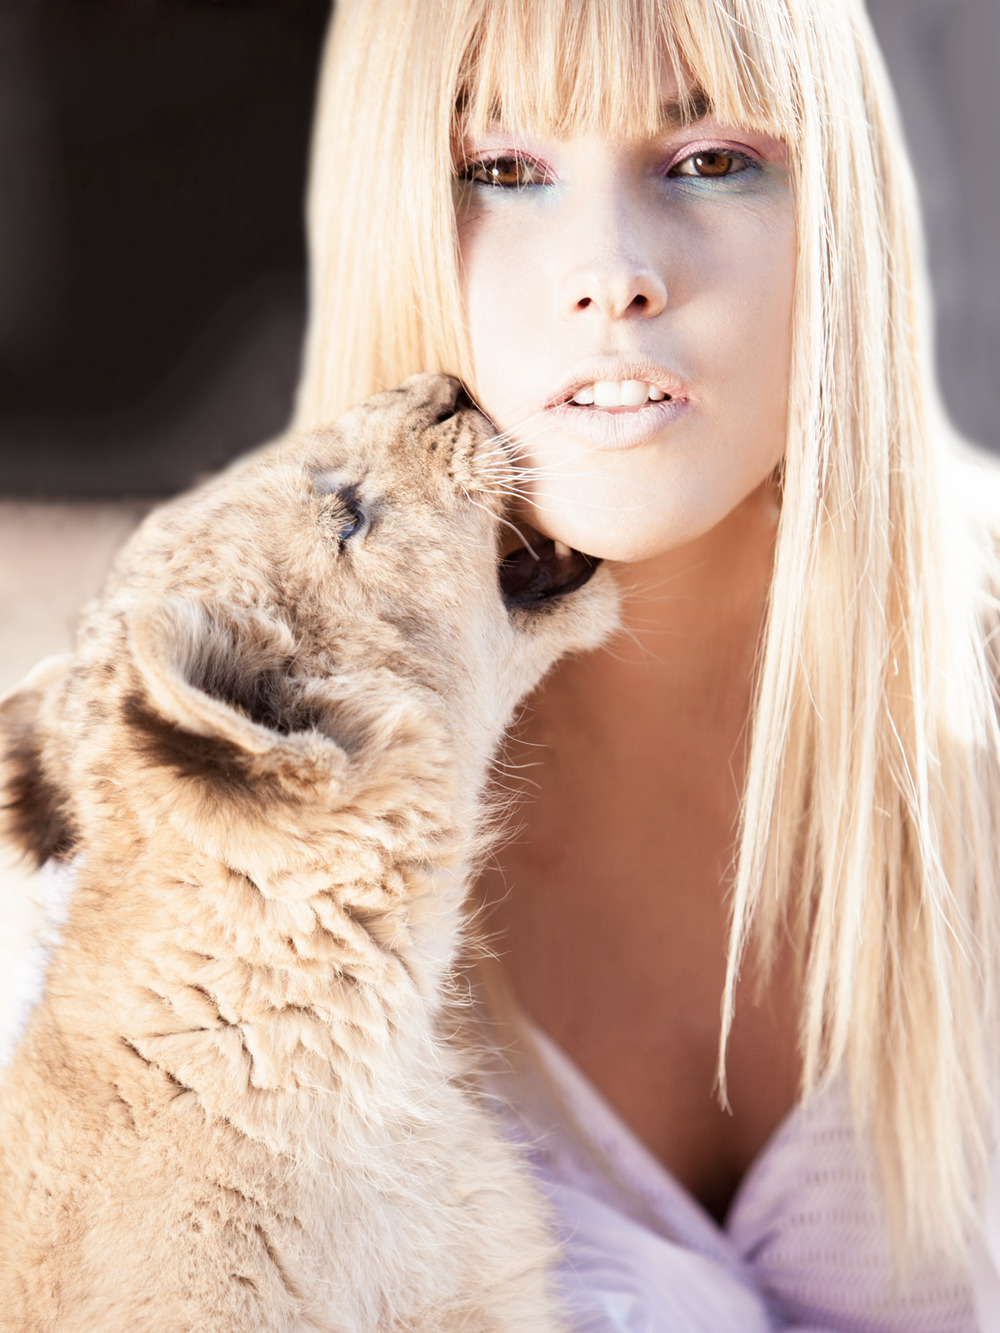 tim gerges fashion photographer katrina animals-5277.jpg